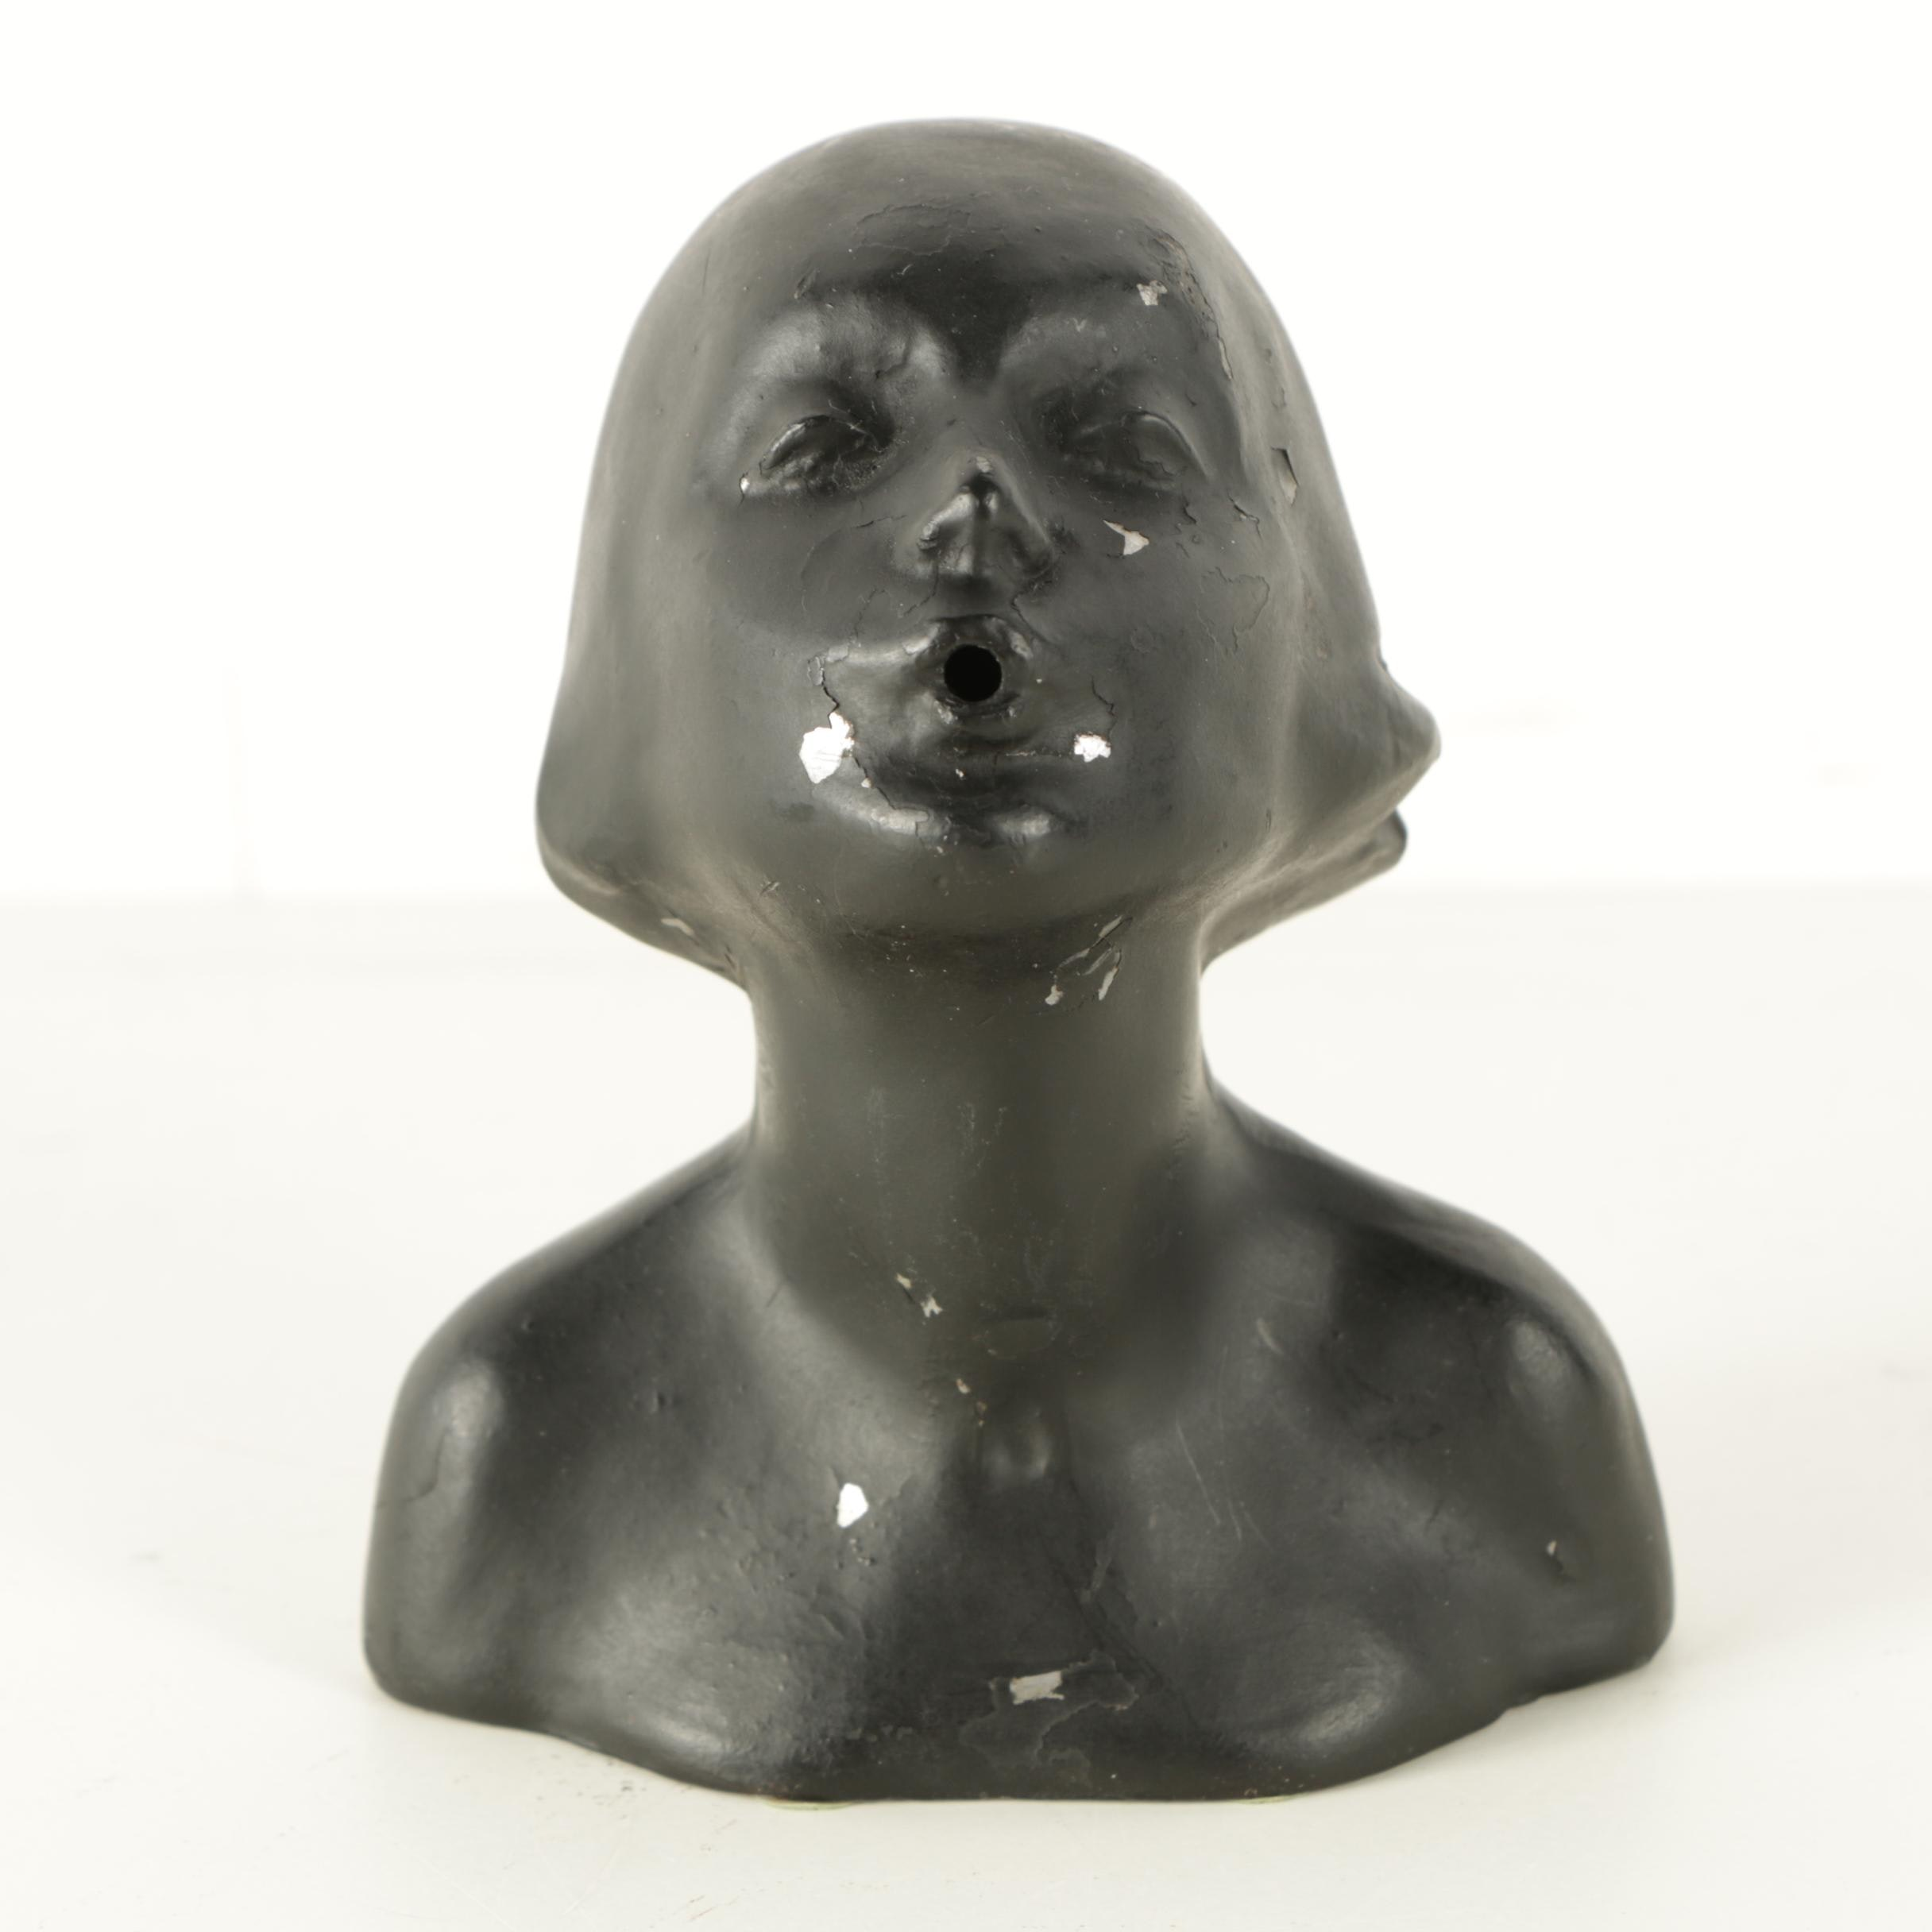 Vintage Cast Lead Alloy Sculpture of a Woman with Pursed Lips